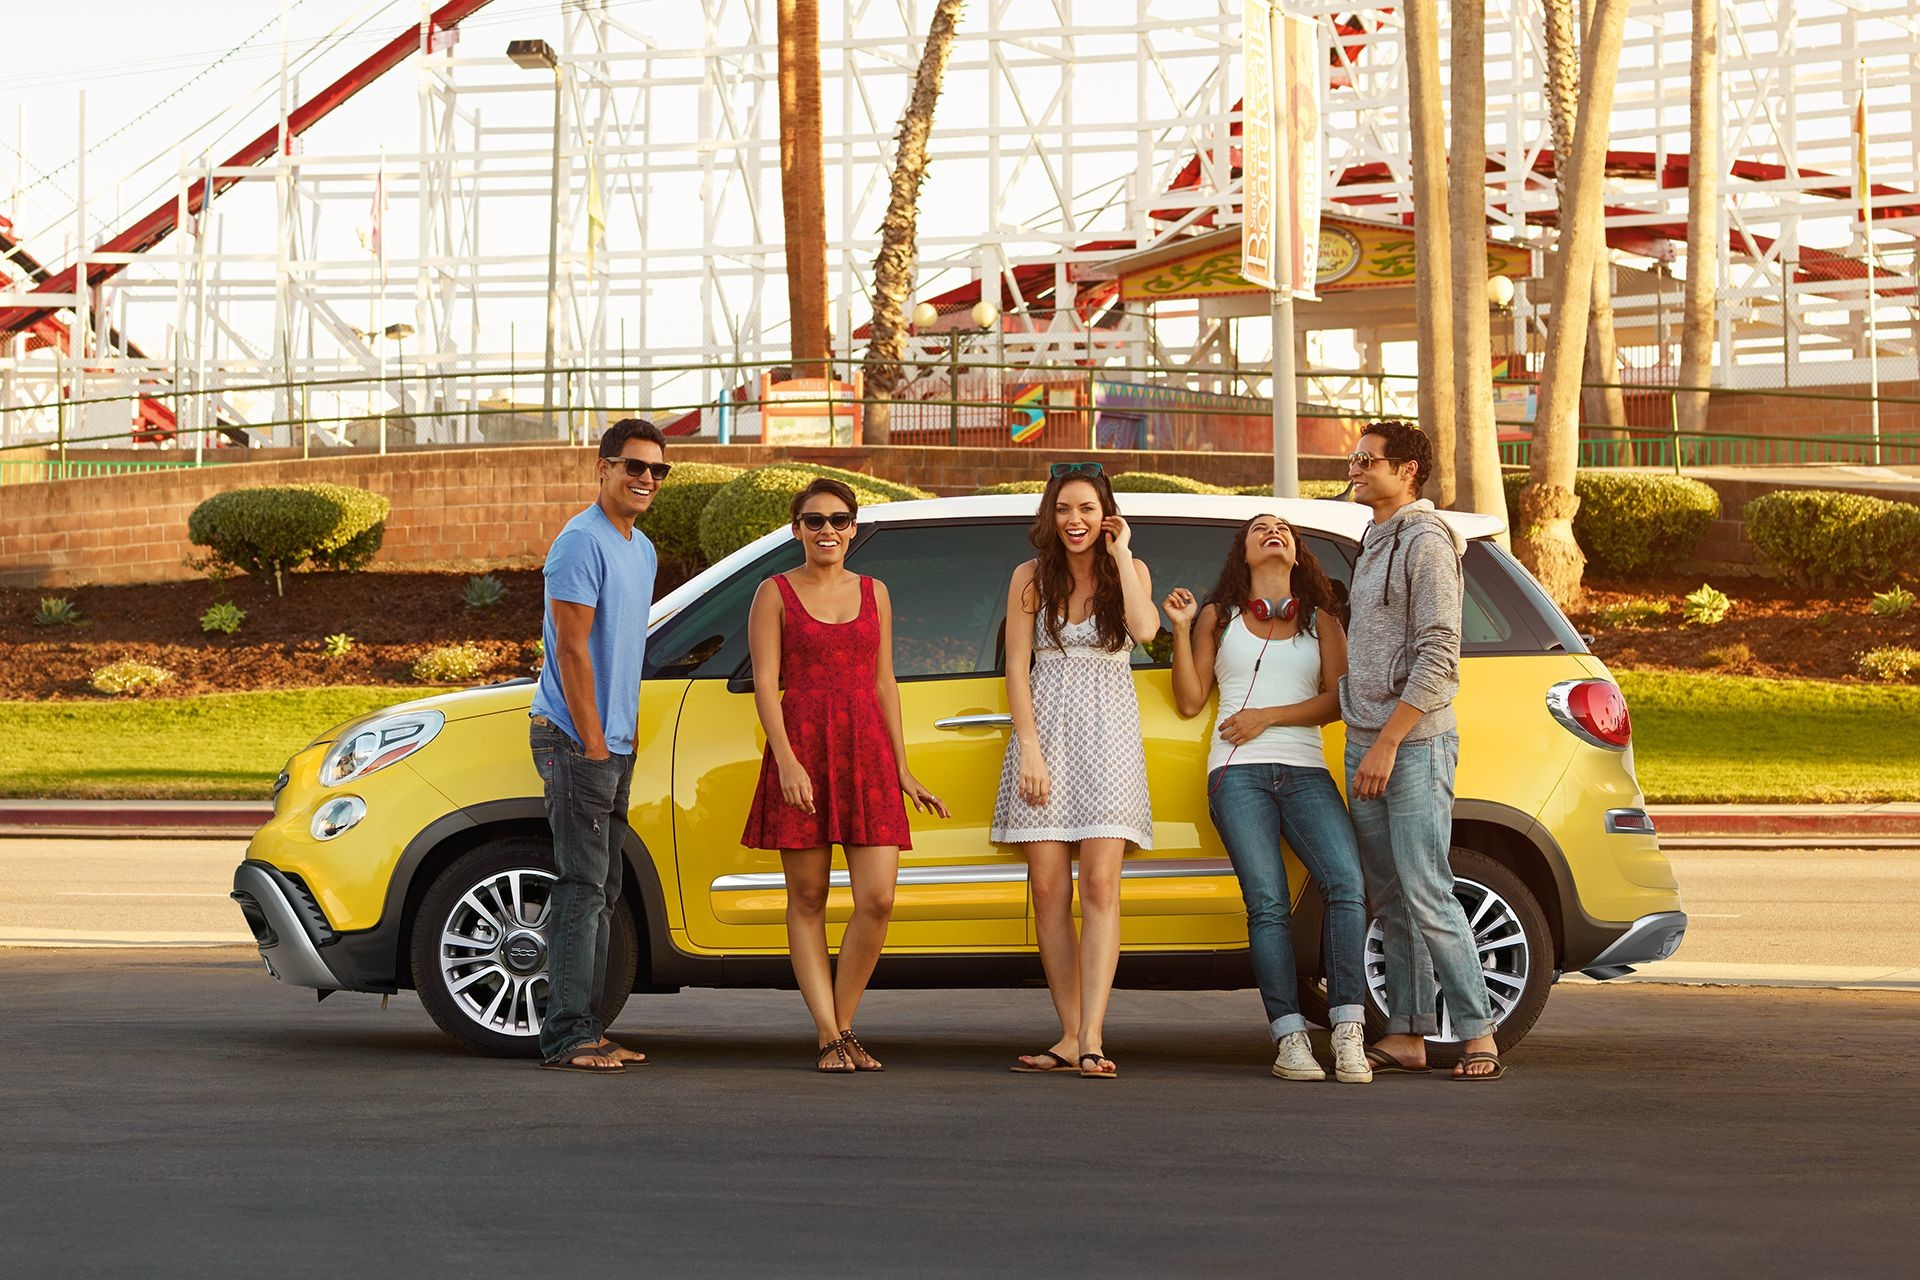 2018 Fiat 500L exterior side view in yellow